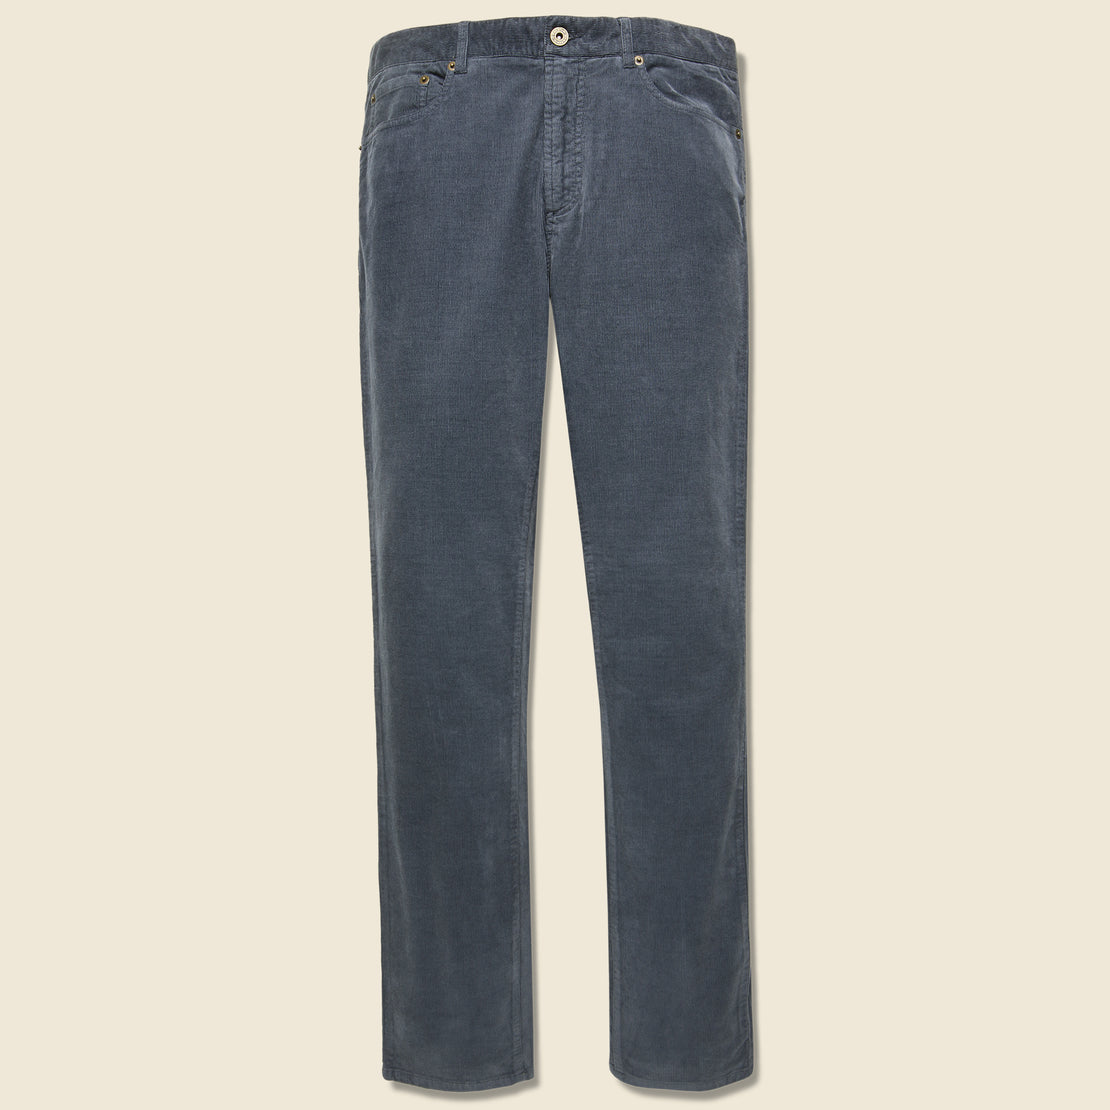 Faherty Stretch Corduroy Pant - Navy